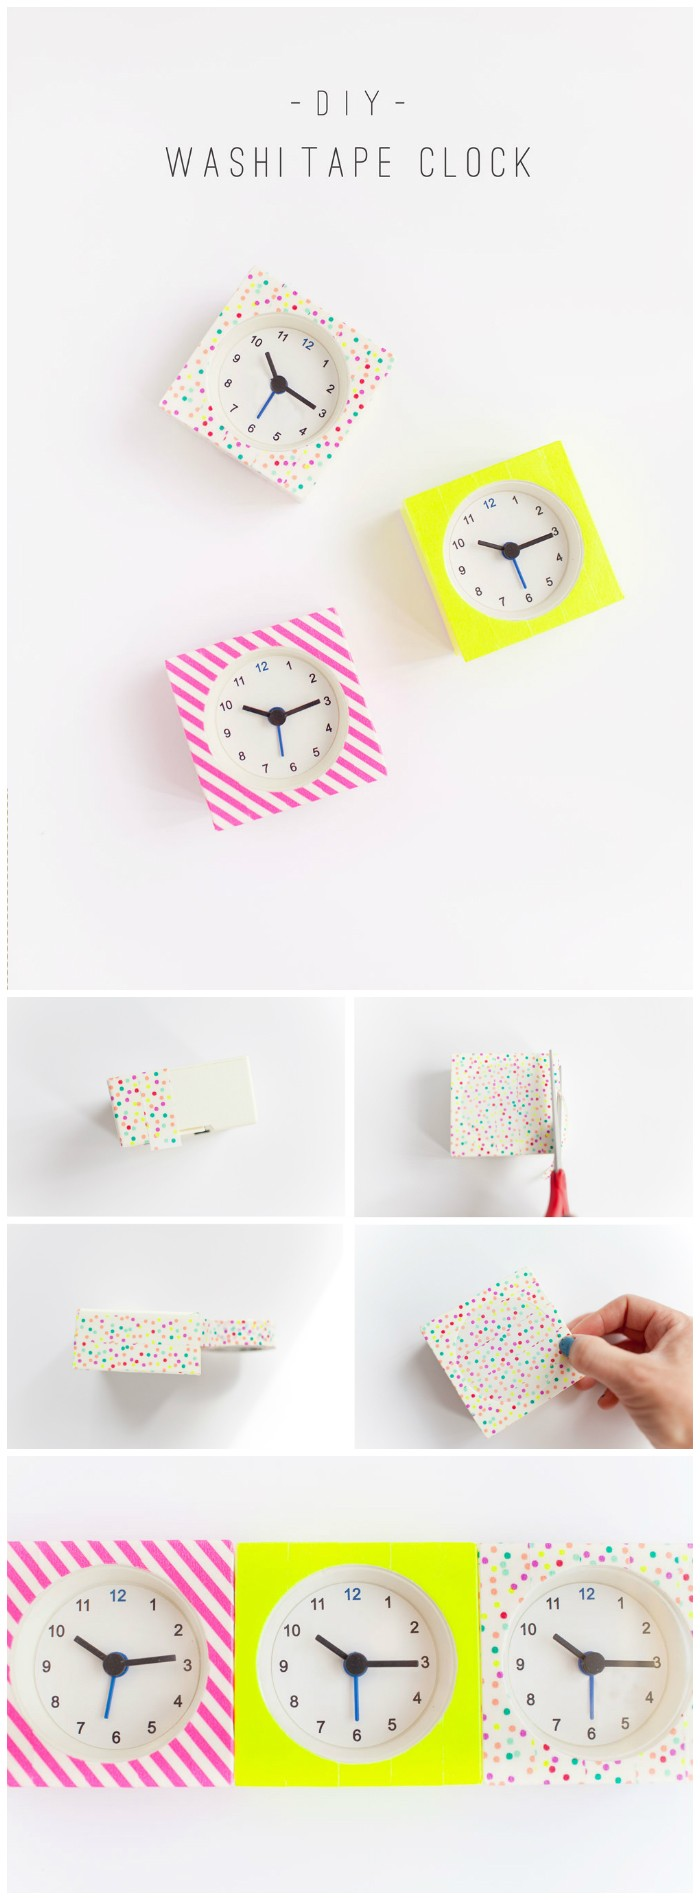 Washi Tape Clocks